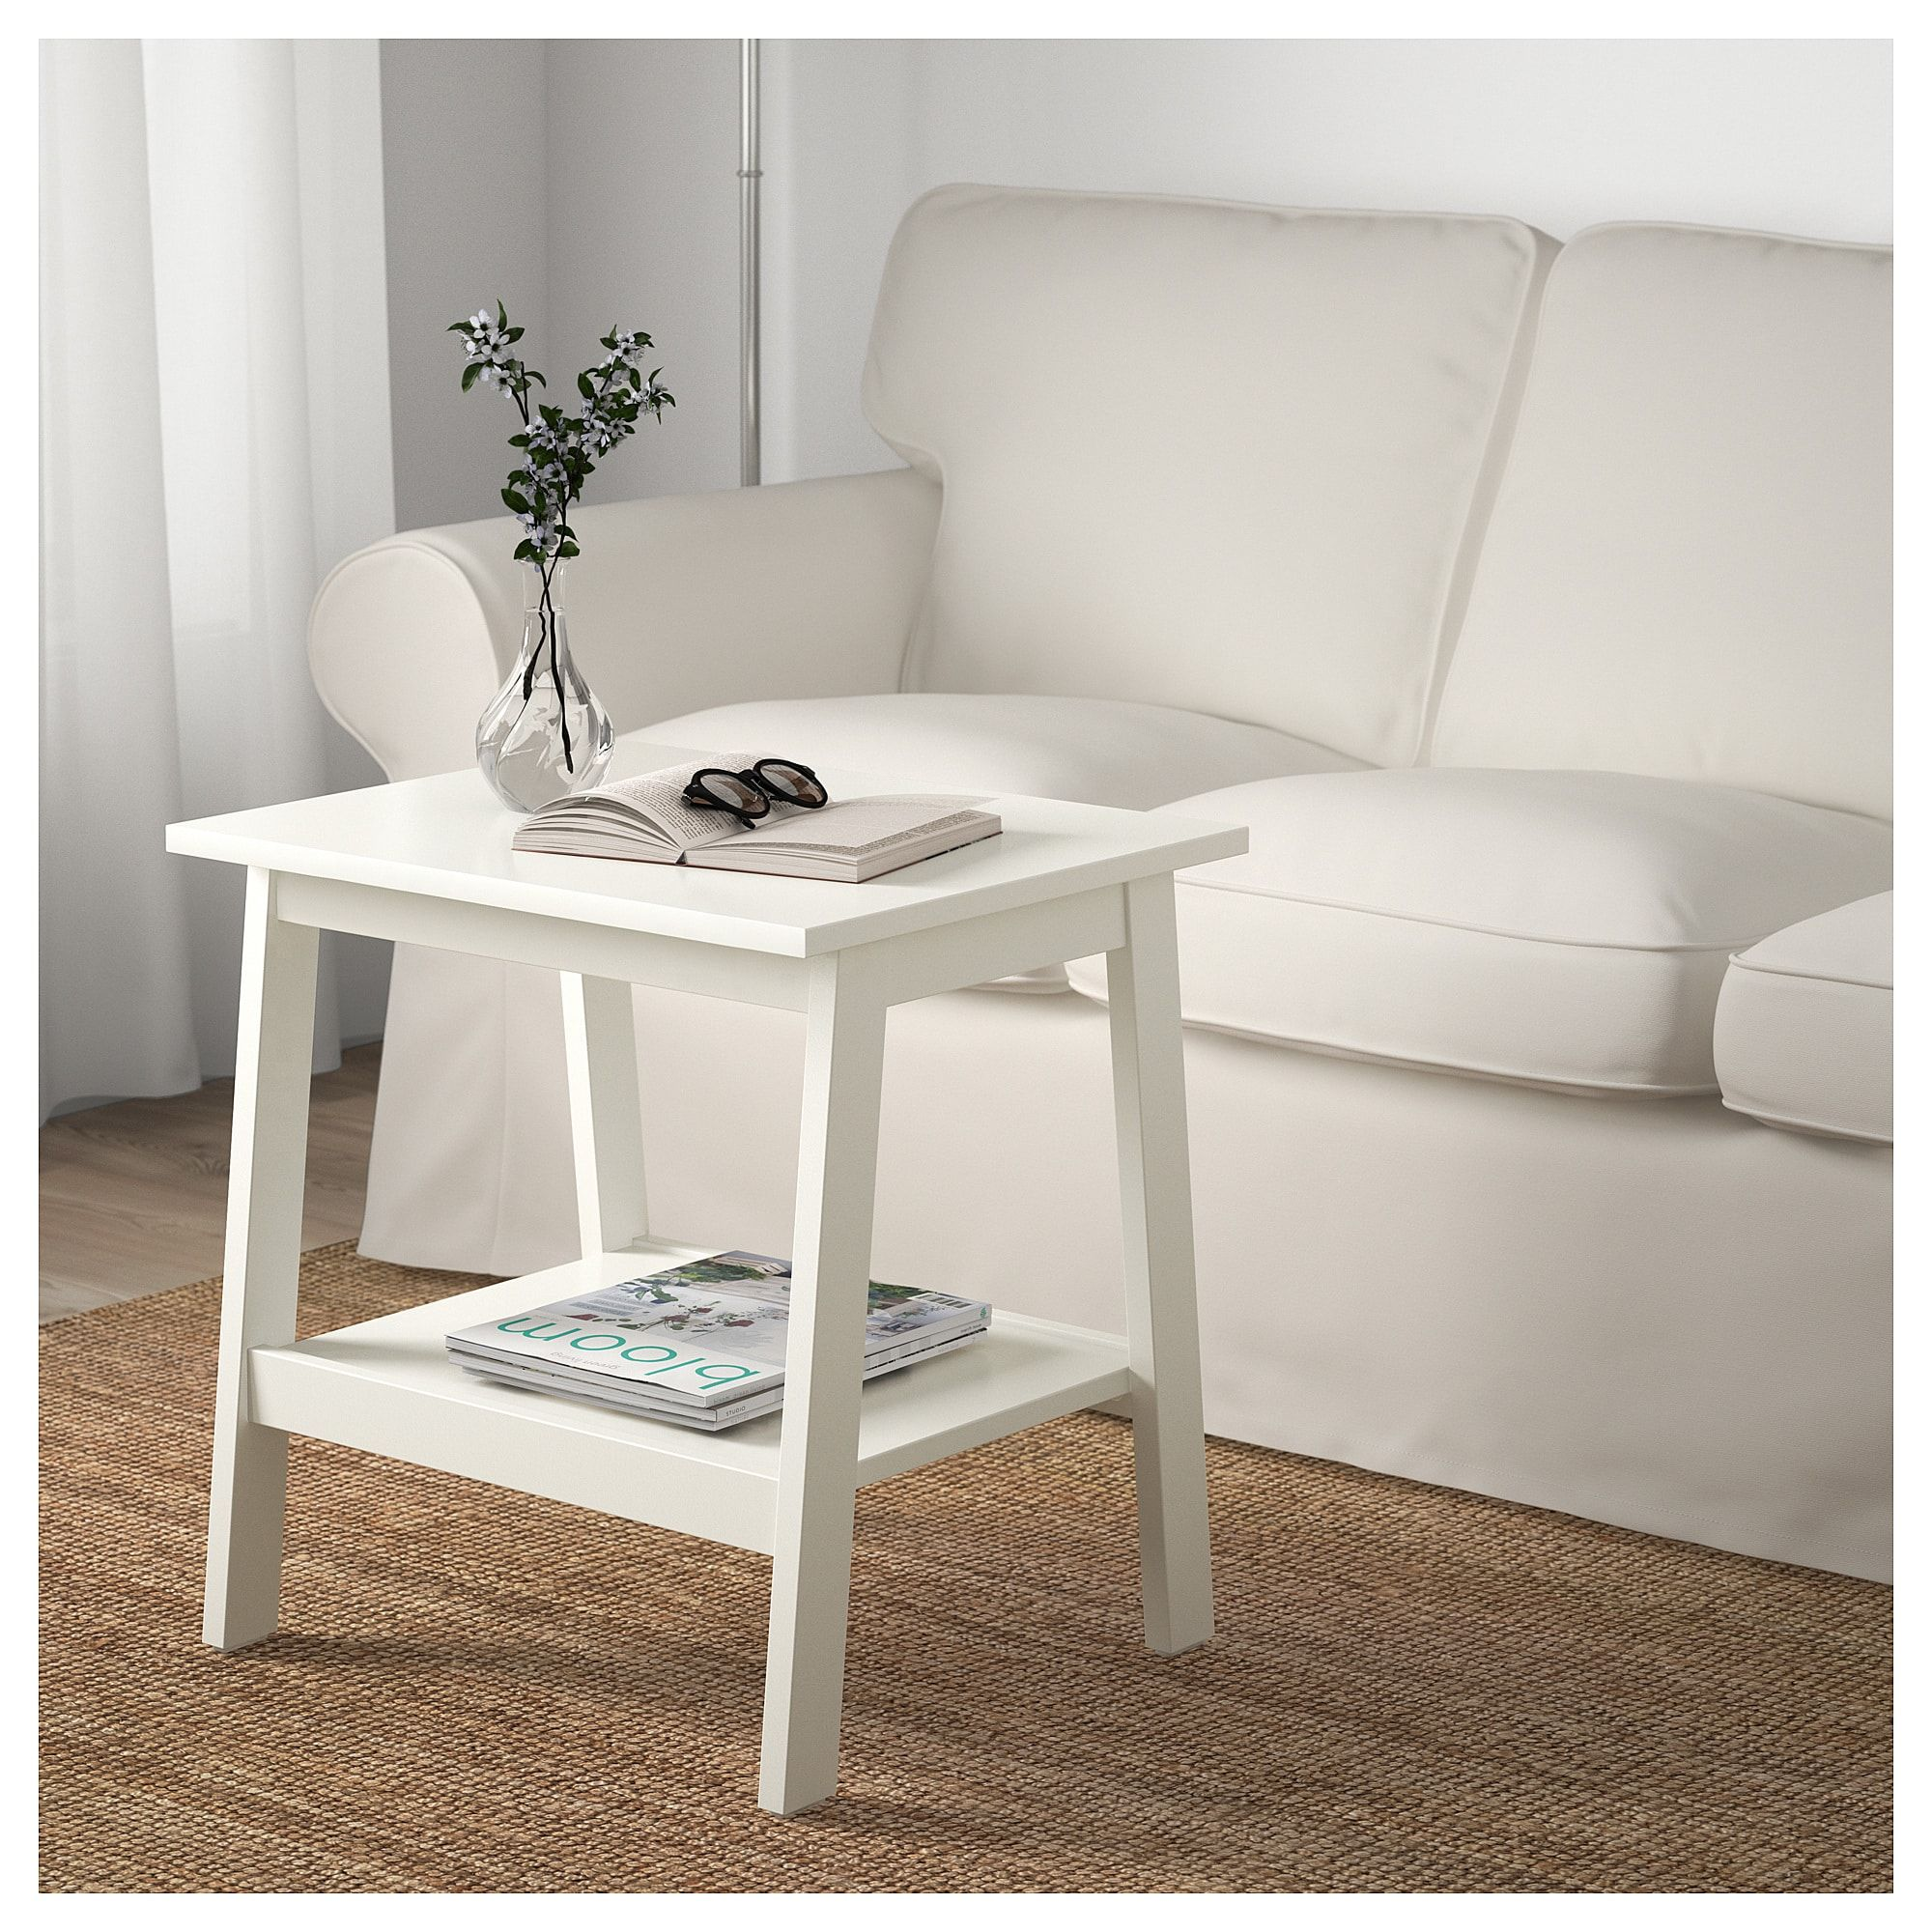 IKEA LUNNARP Side table white White side tables, Ikea